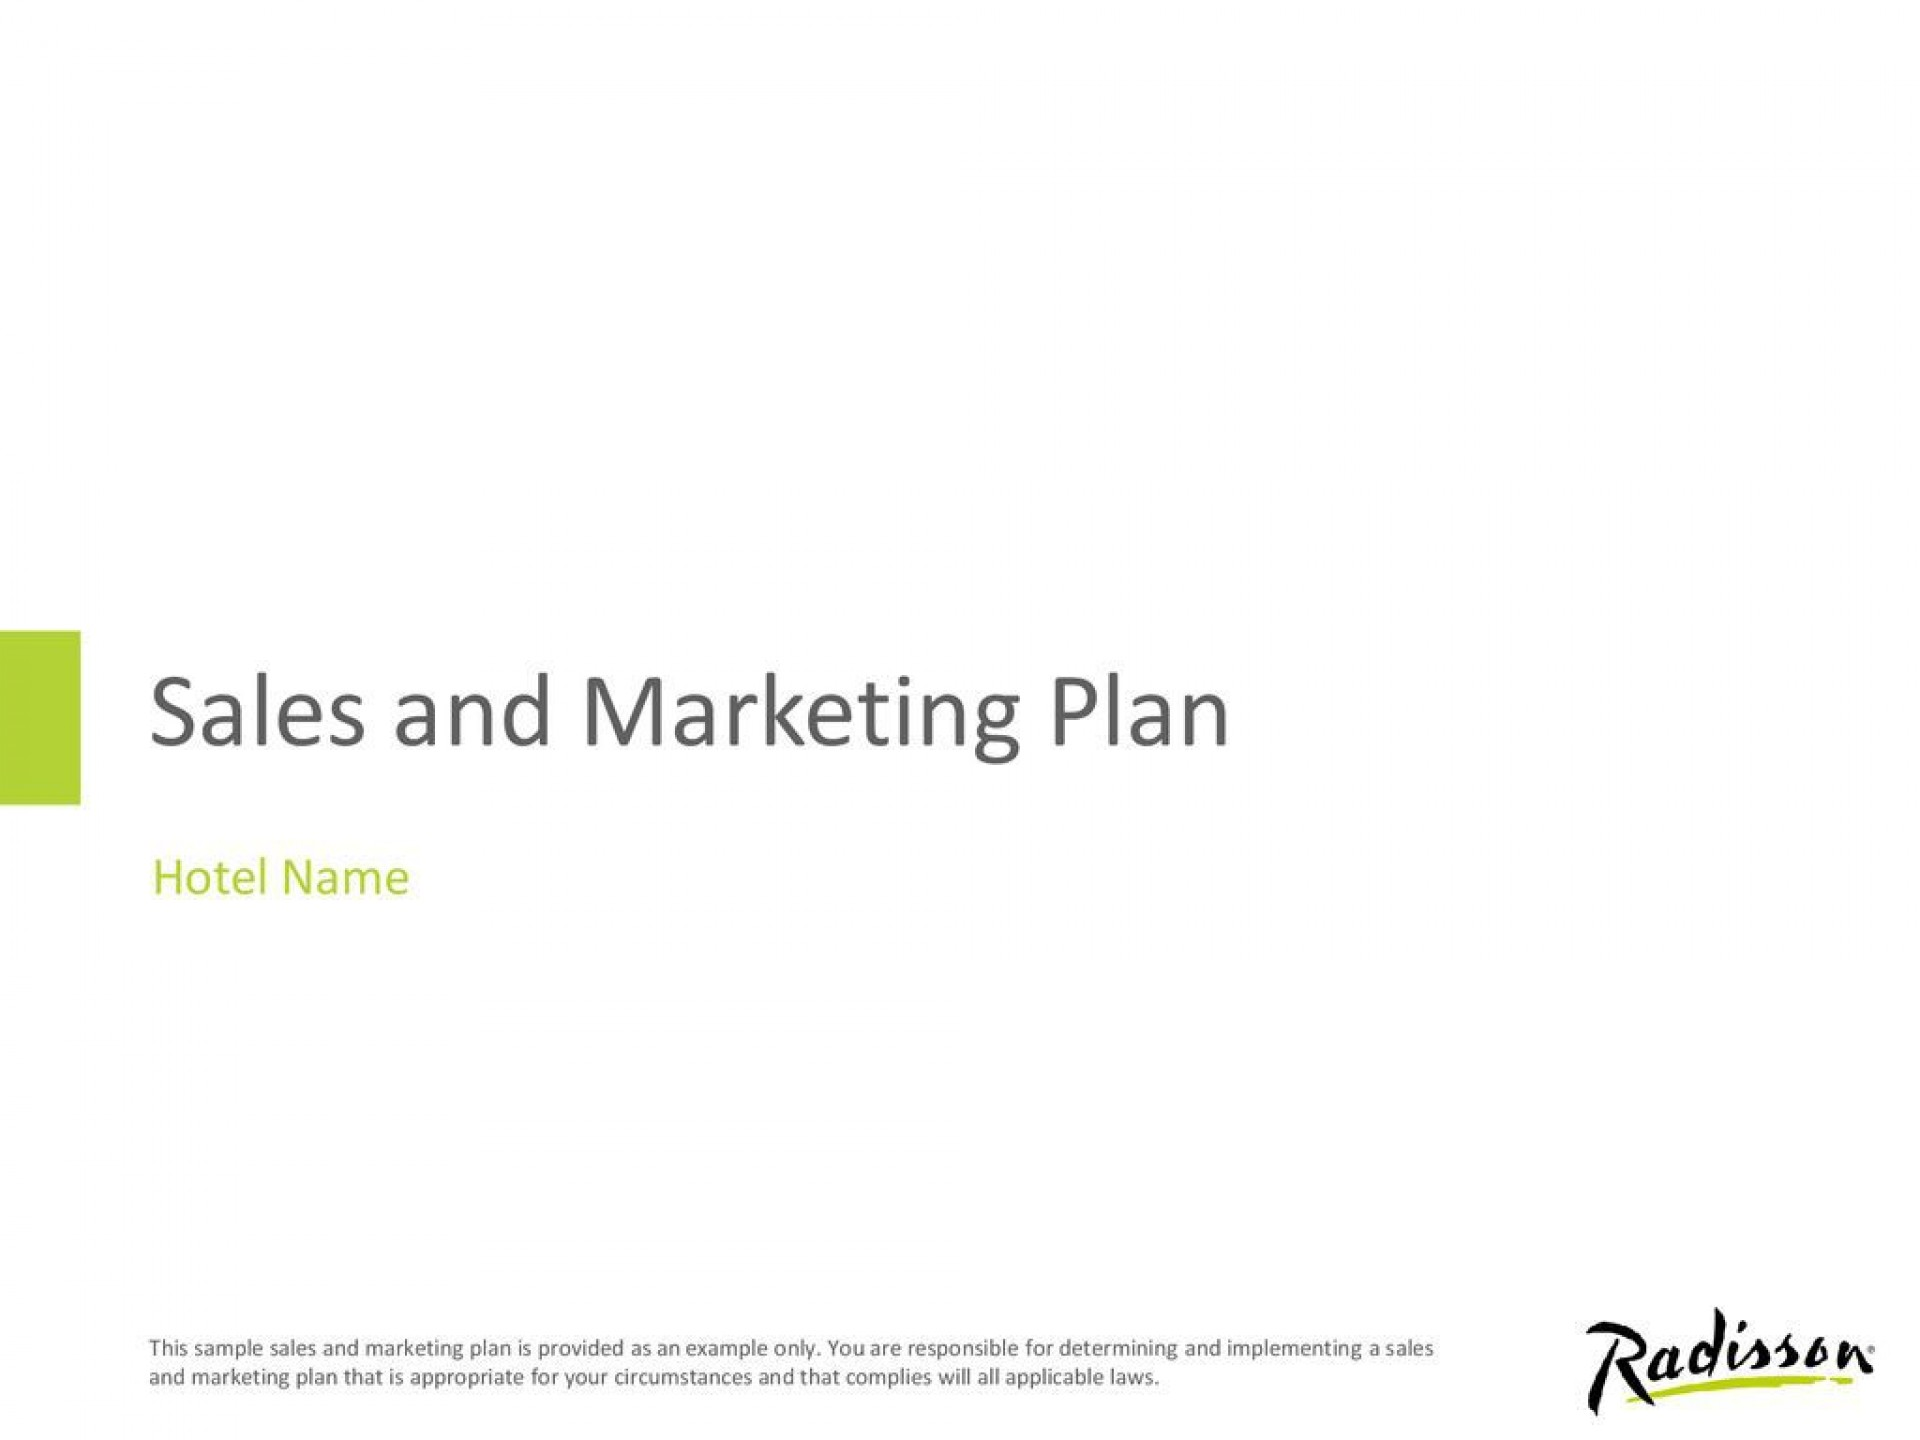 009 Awful Hotel Sale And Marketing Plan Example Inspiration  Examples1920